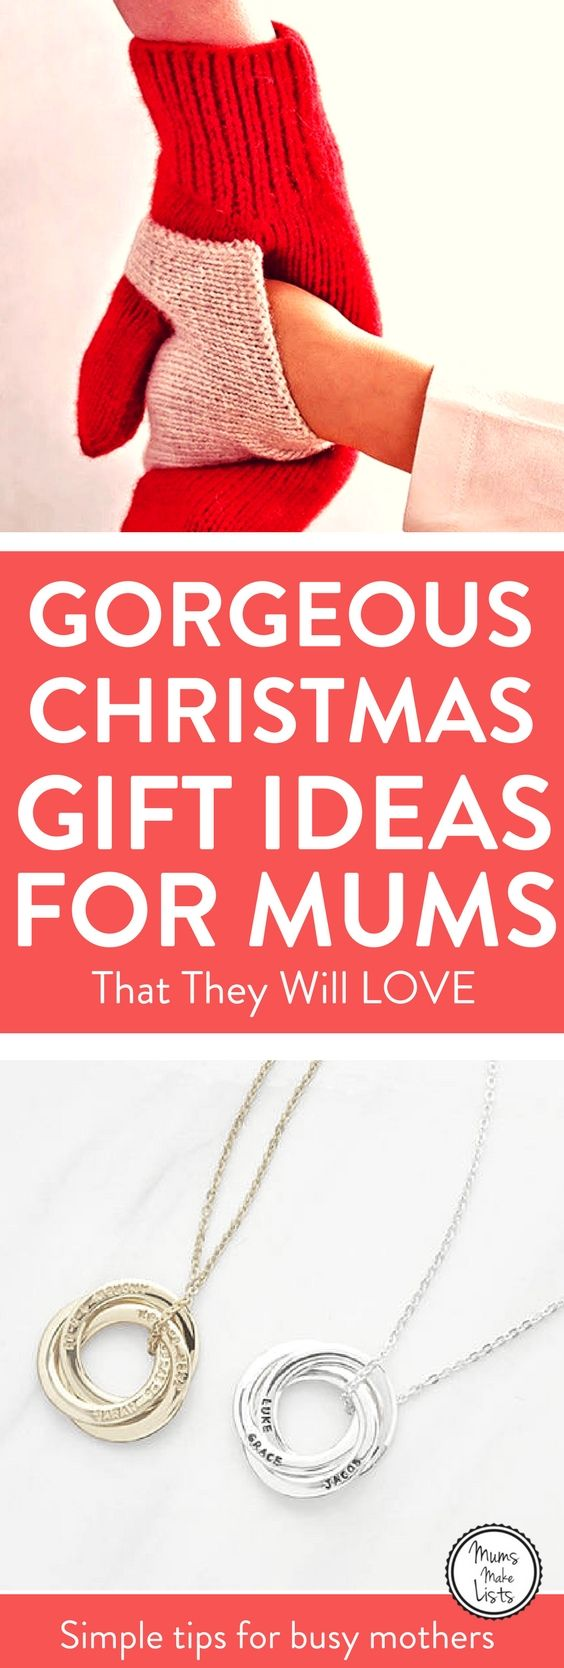 Christmas gifts for mums from daughters sons and husbands This is my Christmas gift wishlist as mom of the family Ive put together ideas for gifts that I would love to re...